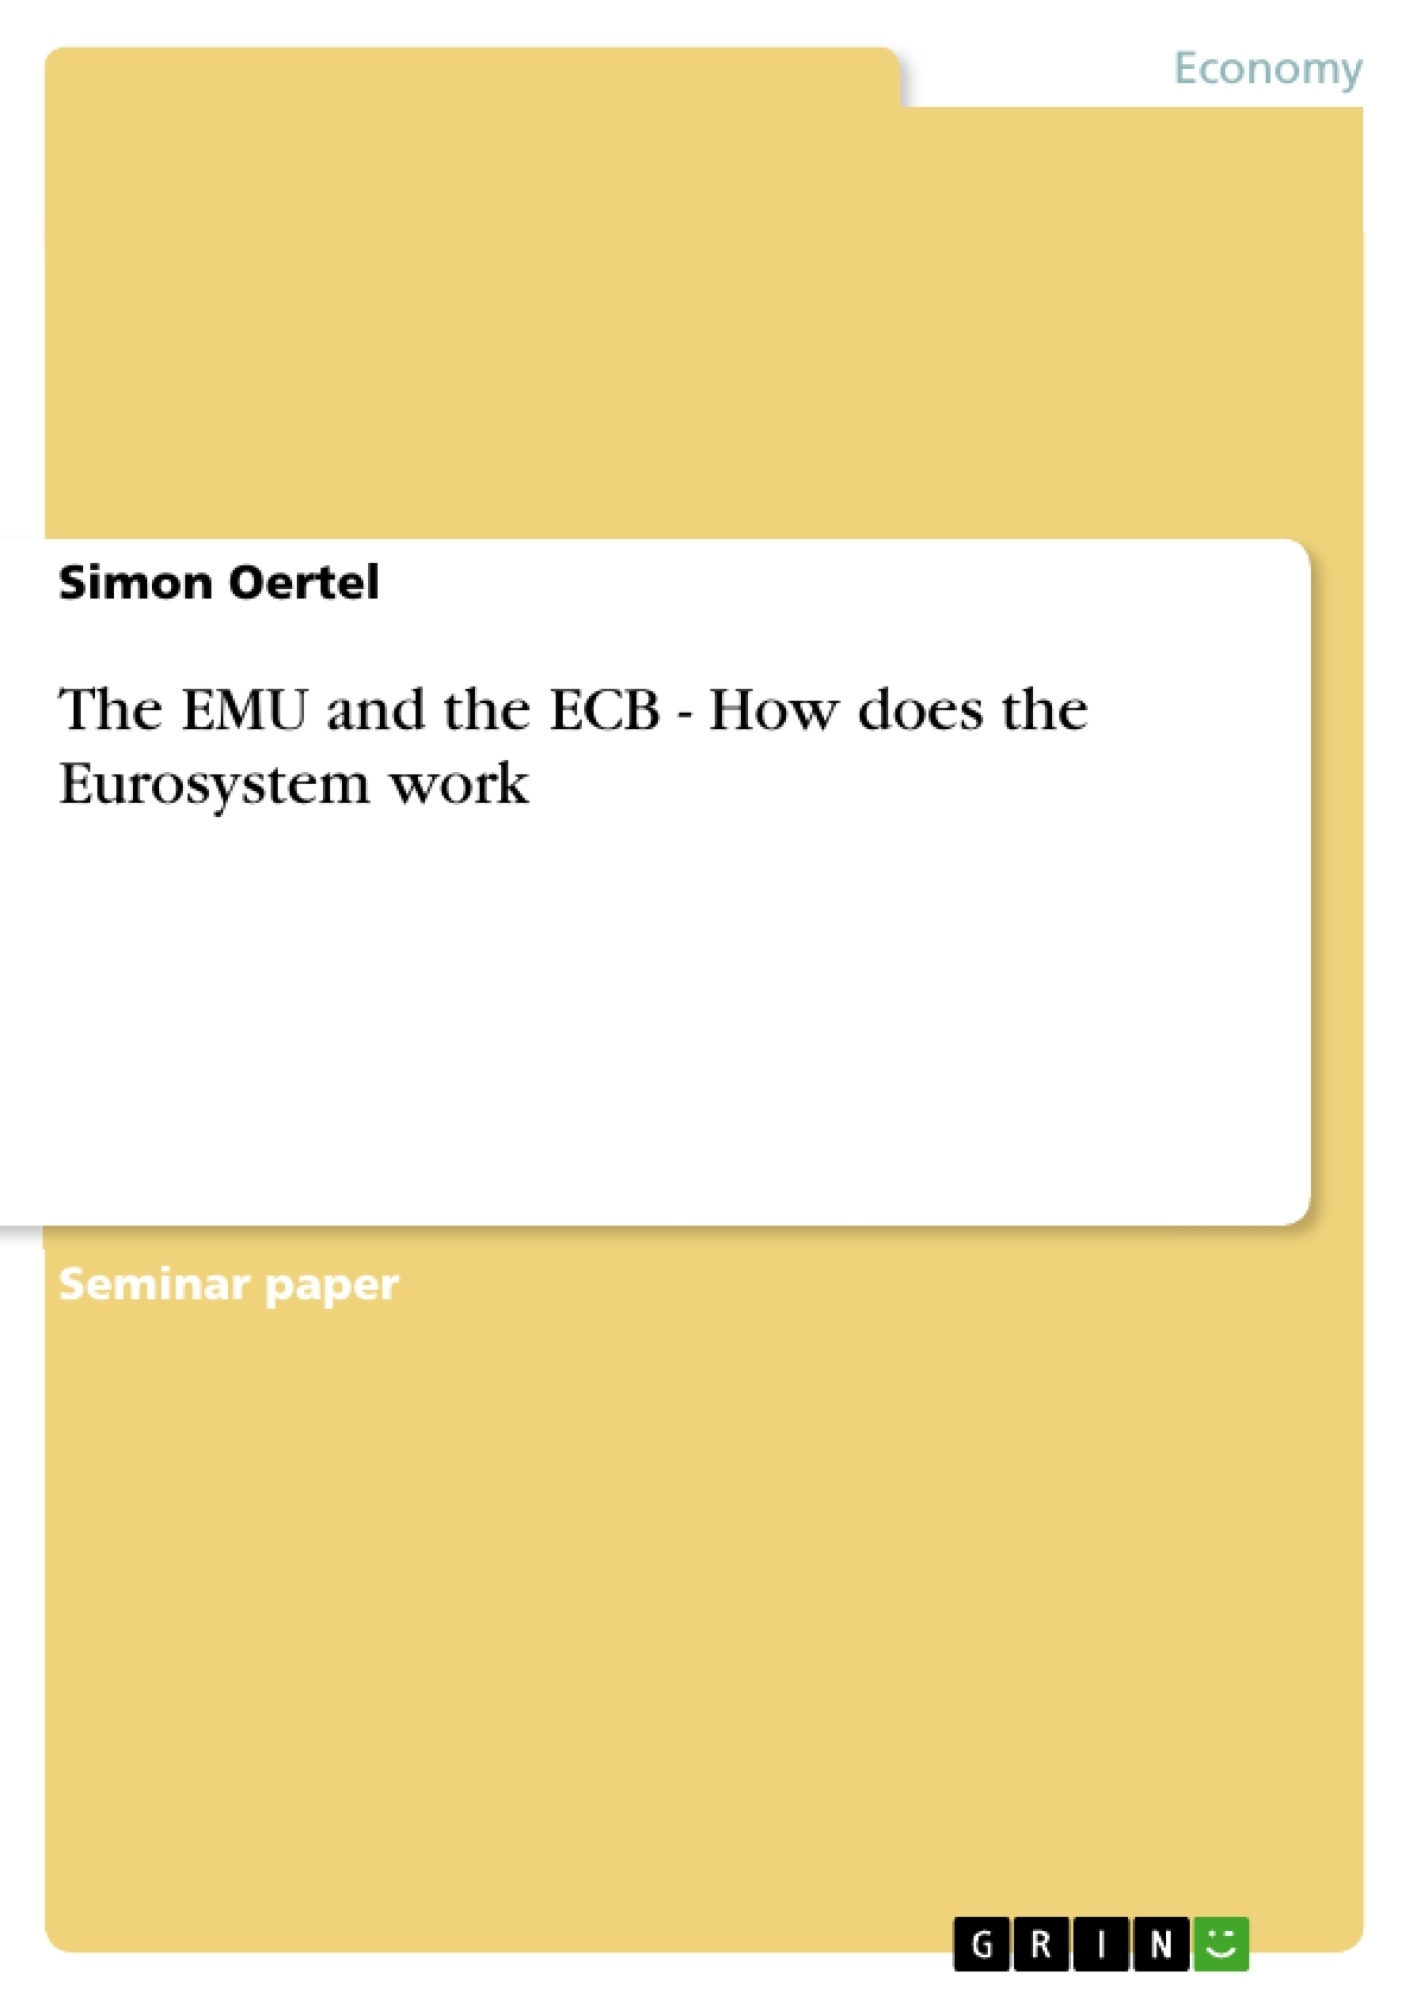 Title: The EMU and the ECB - How does the Eurosystem work